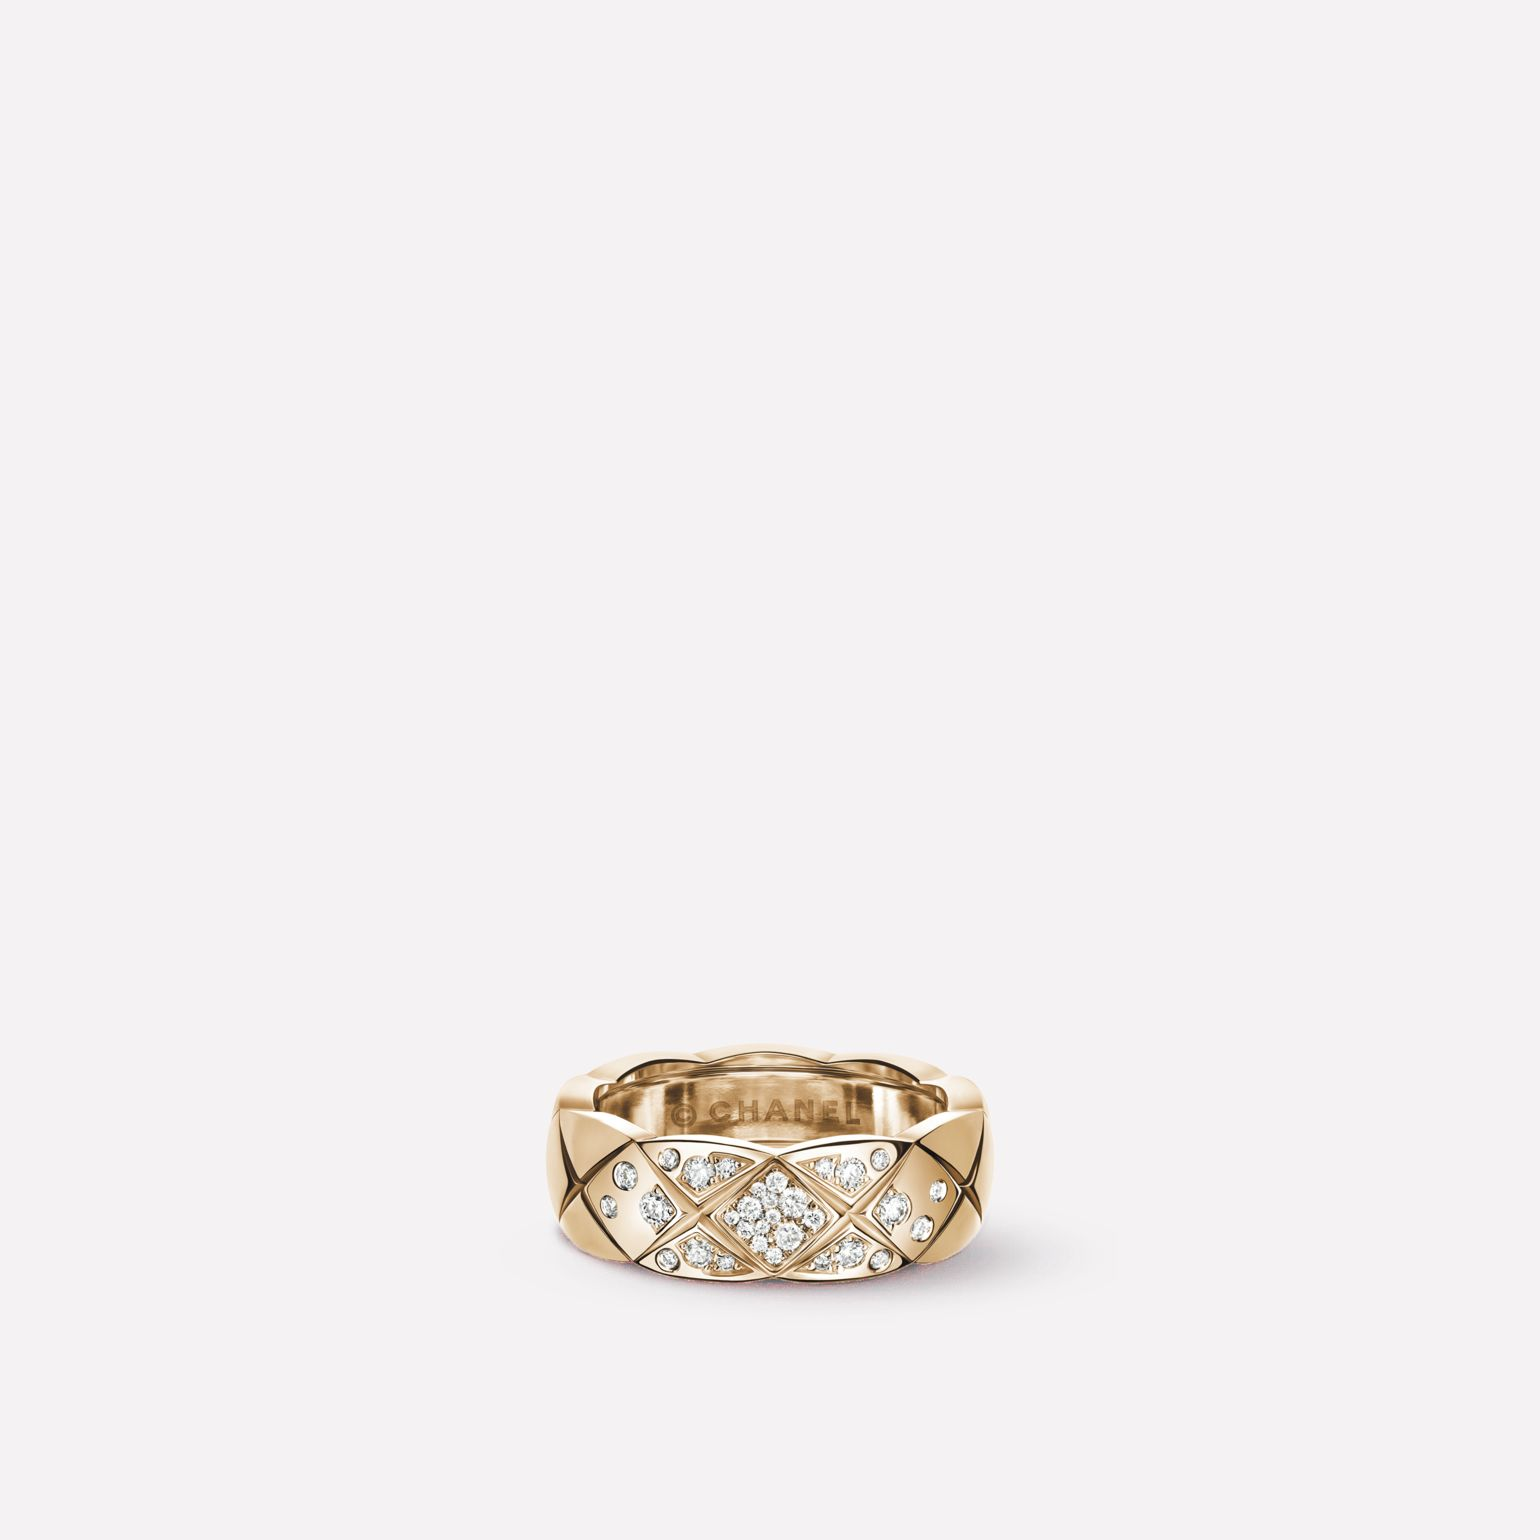 Coco Crush ring Quilted motif, small version, 18K BEIGE GOLD, diamonds